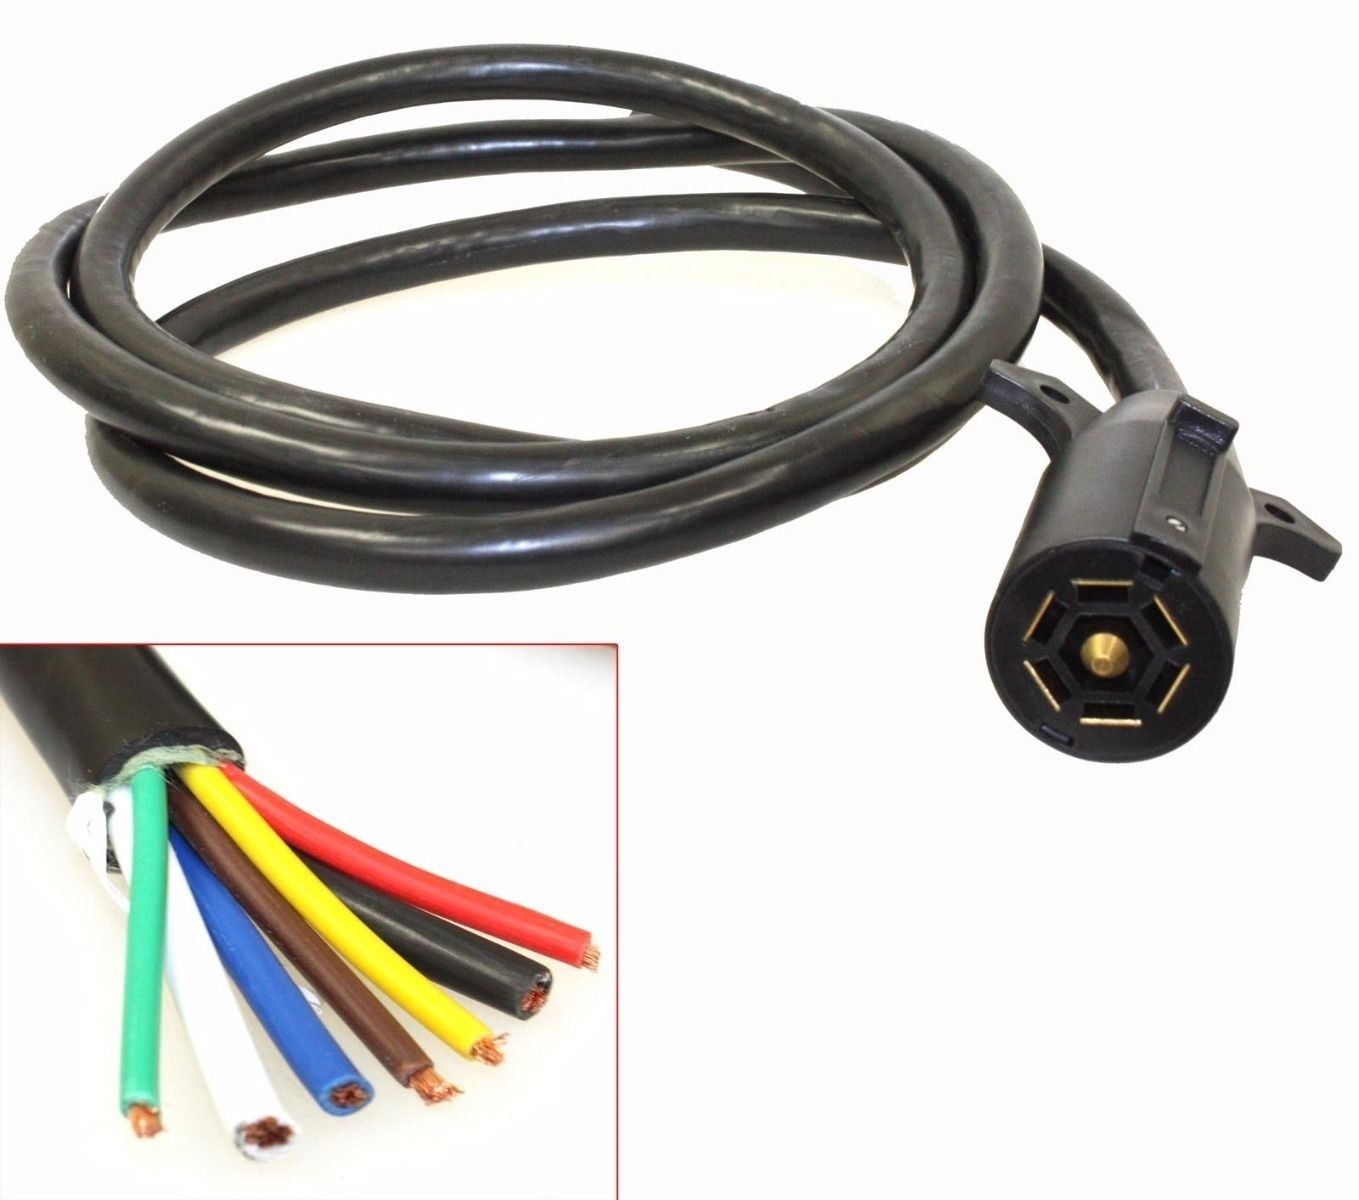 hight resolution of 7ft foot 7 way trailer cord wire harness light plug connector molded 2007 f150 trailer plug harness trailer plug harness